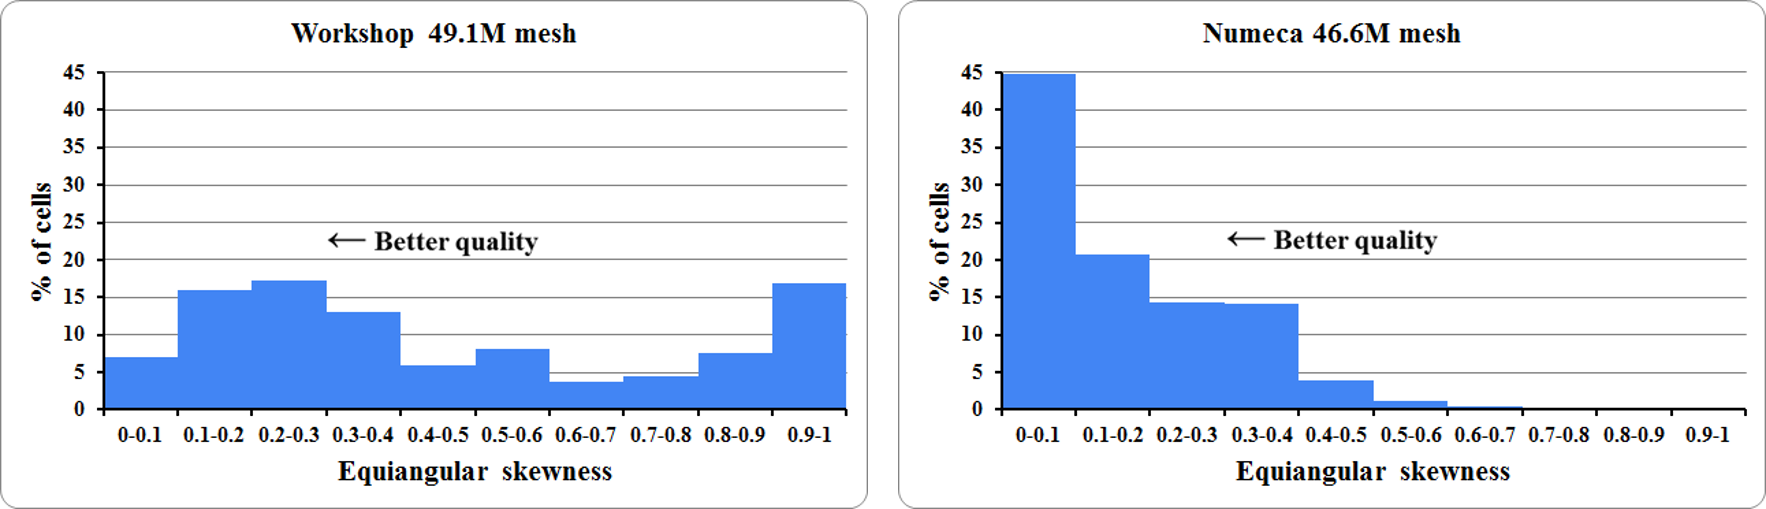 Figure 5: Histograms Of Equiangular Skewness Of The Meshes